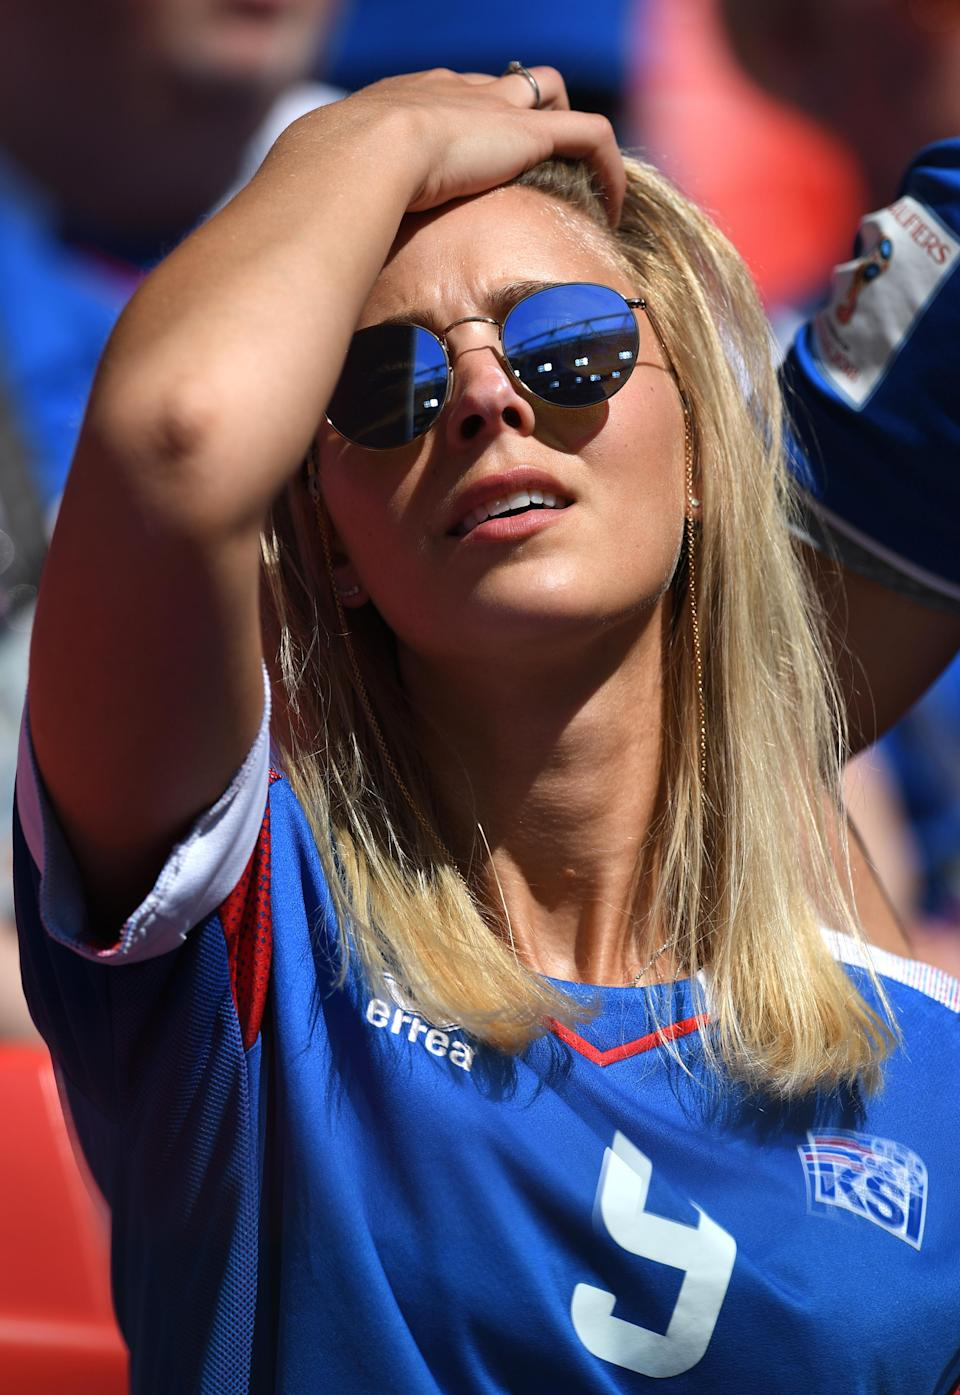 <p>An Iceland fan enjoys the pre match atmosphere prior to the 2018 FIFA World Cup Russia group D match between Argentina and Iceland at Spartak Stadium on June 16, 2018 in Moscow, Russia. (Photo by Matthias Hangst/Getty Images) </p>